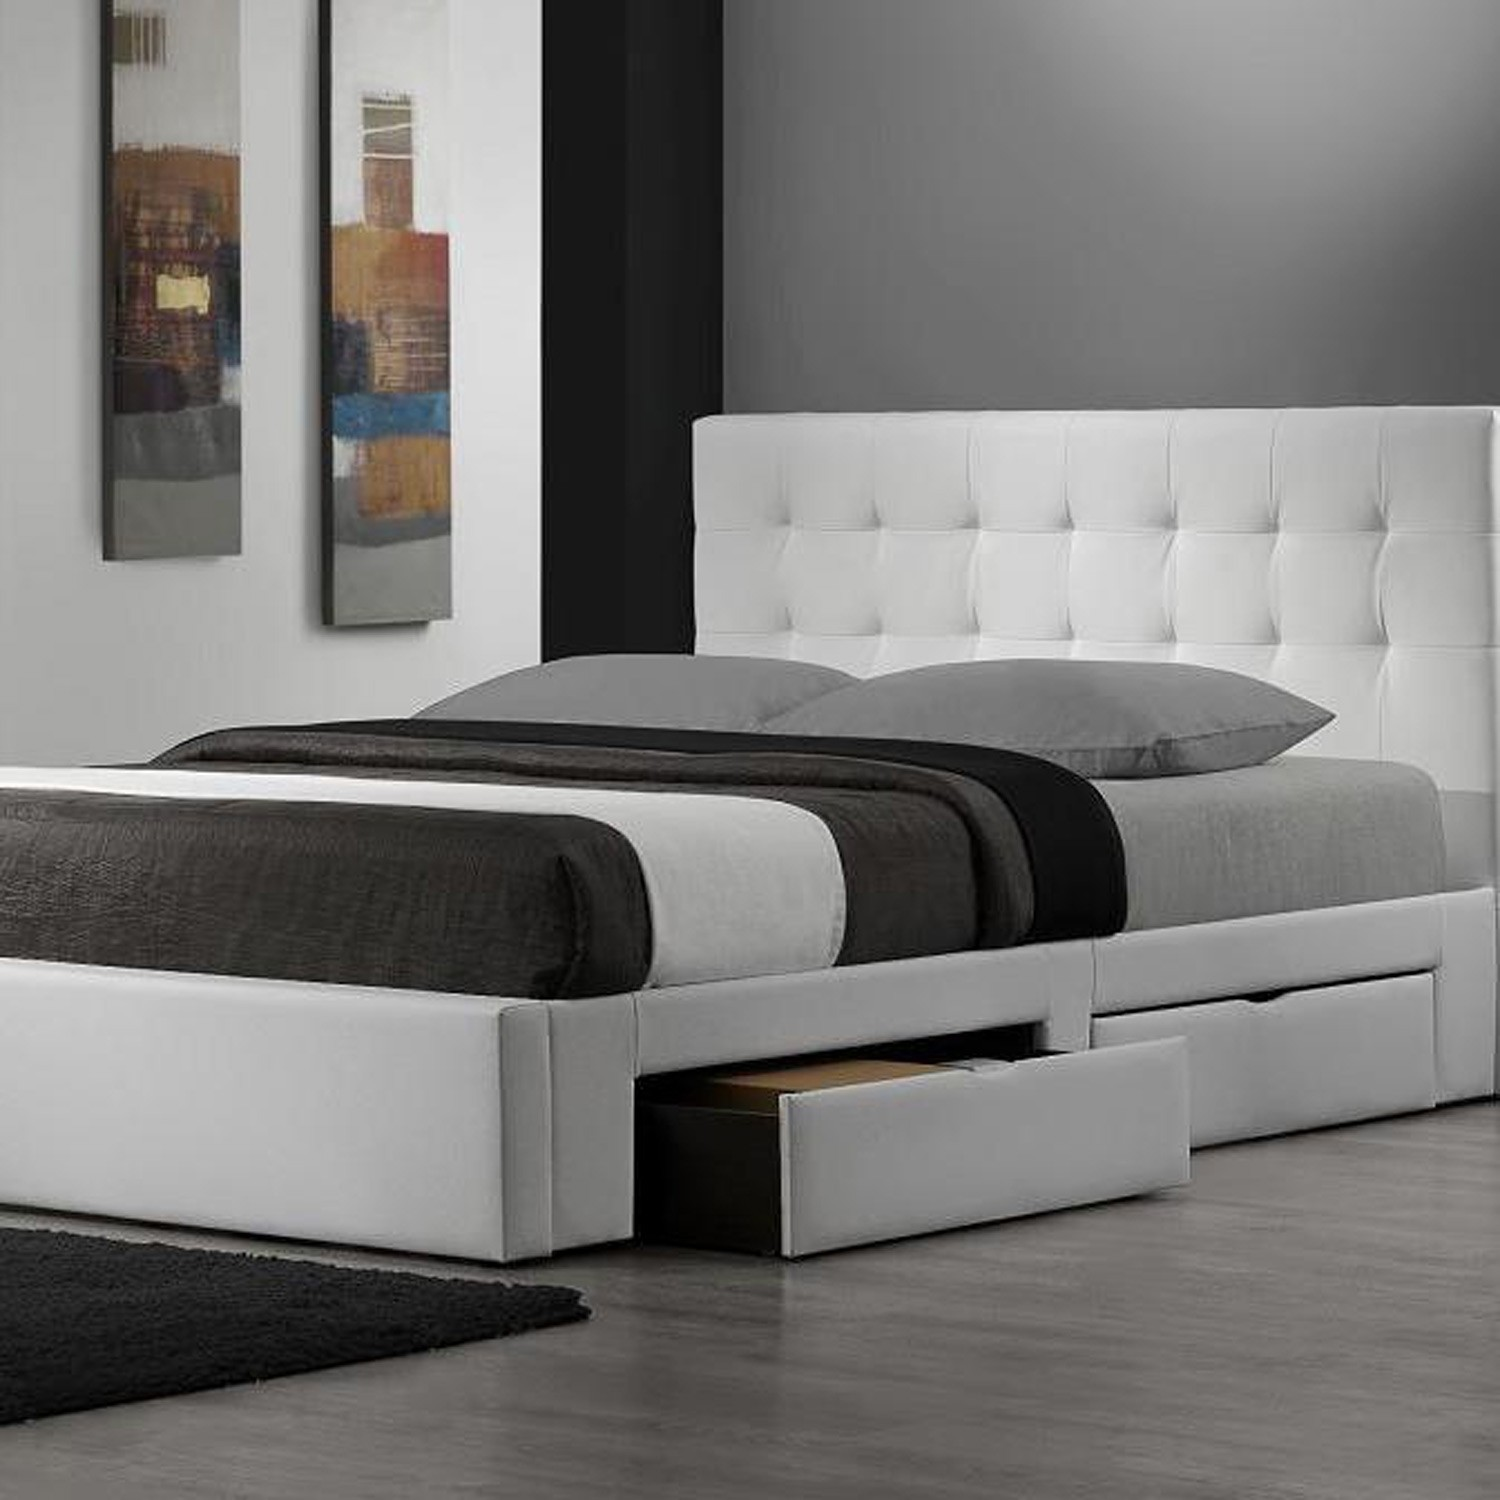 Mesmerizing King Size Bed Frame With Headboard And Interior Model